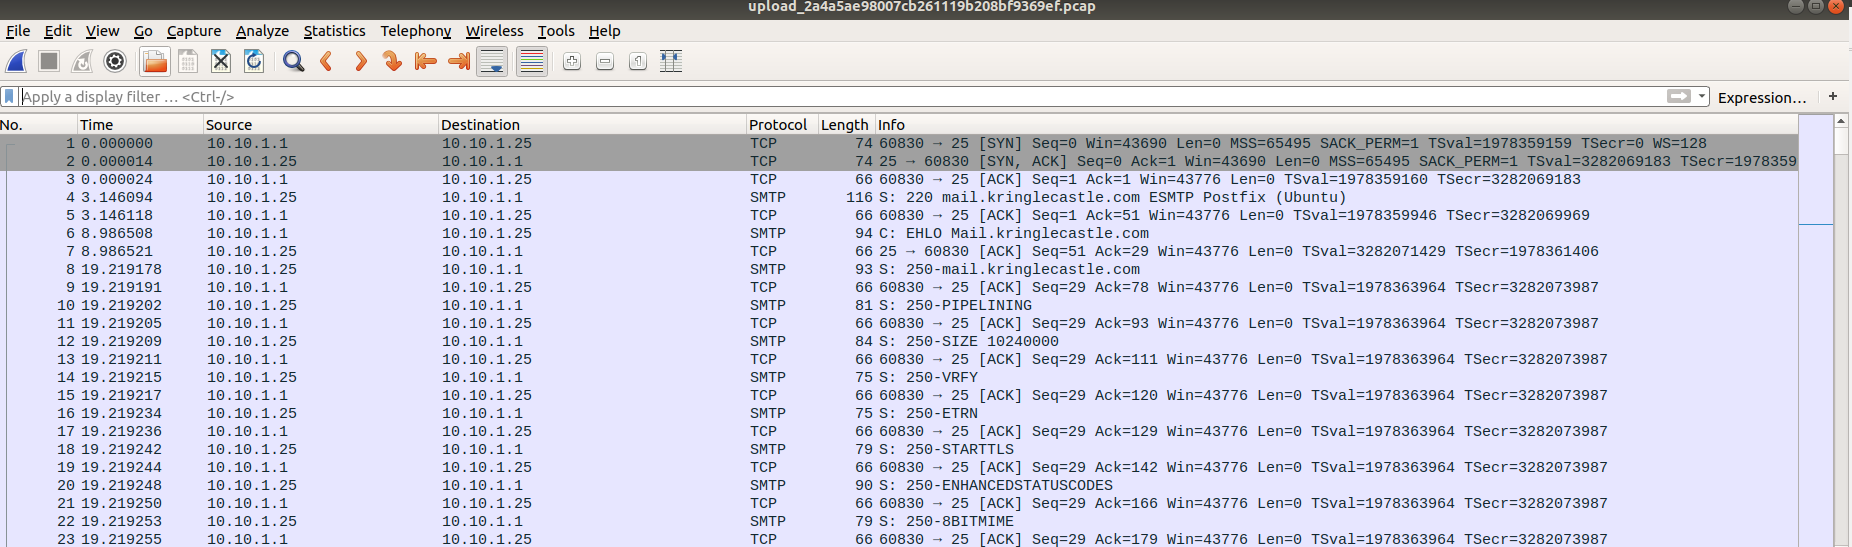 packalyzer_wireshark_smtp.png